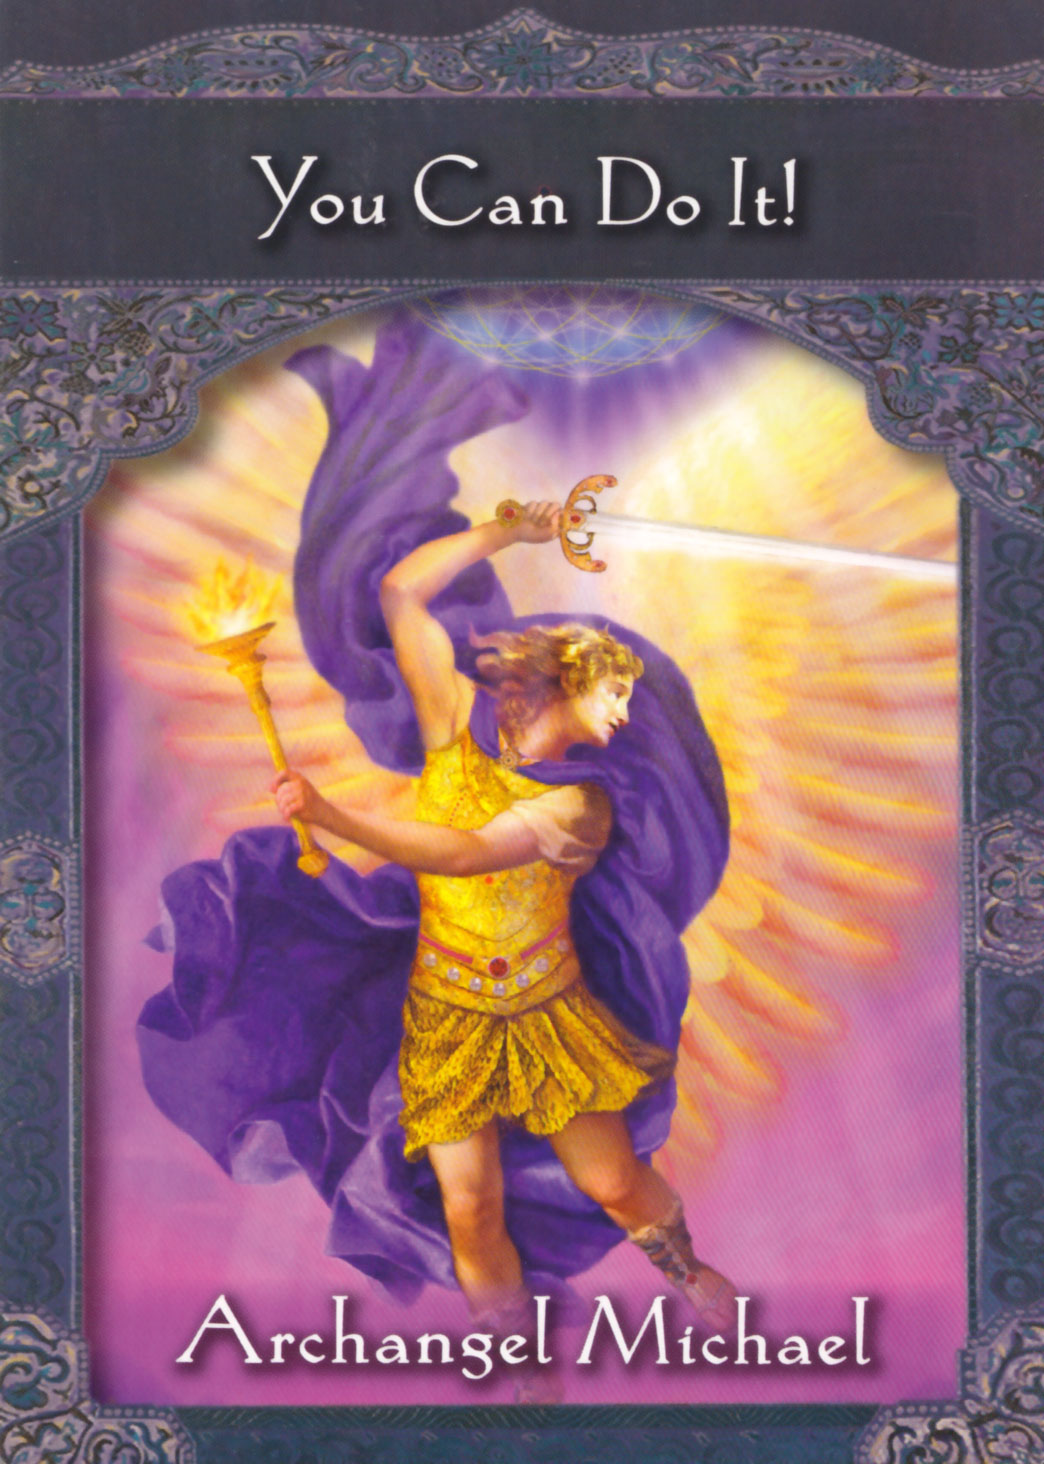 Notes from my Intro to the Angels Class - Wellness Through